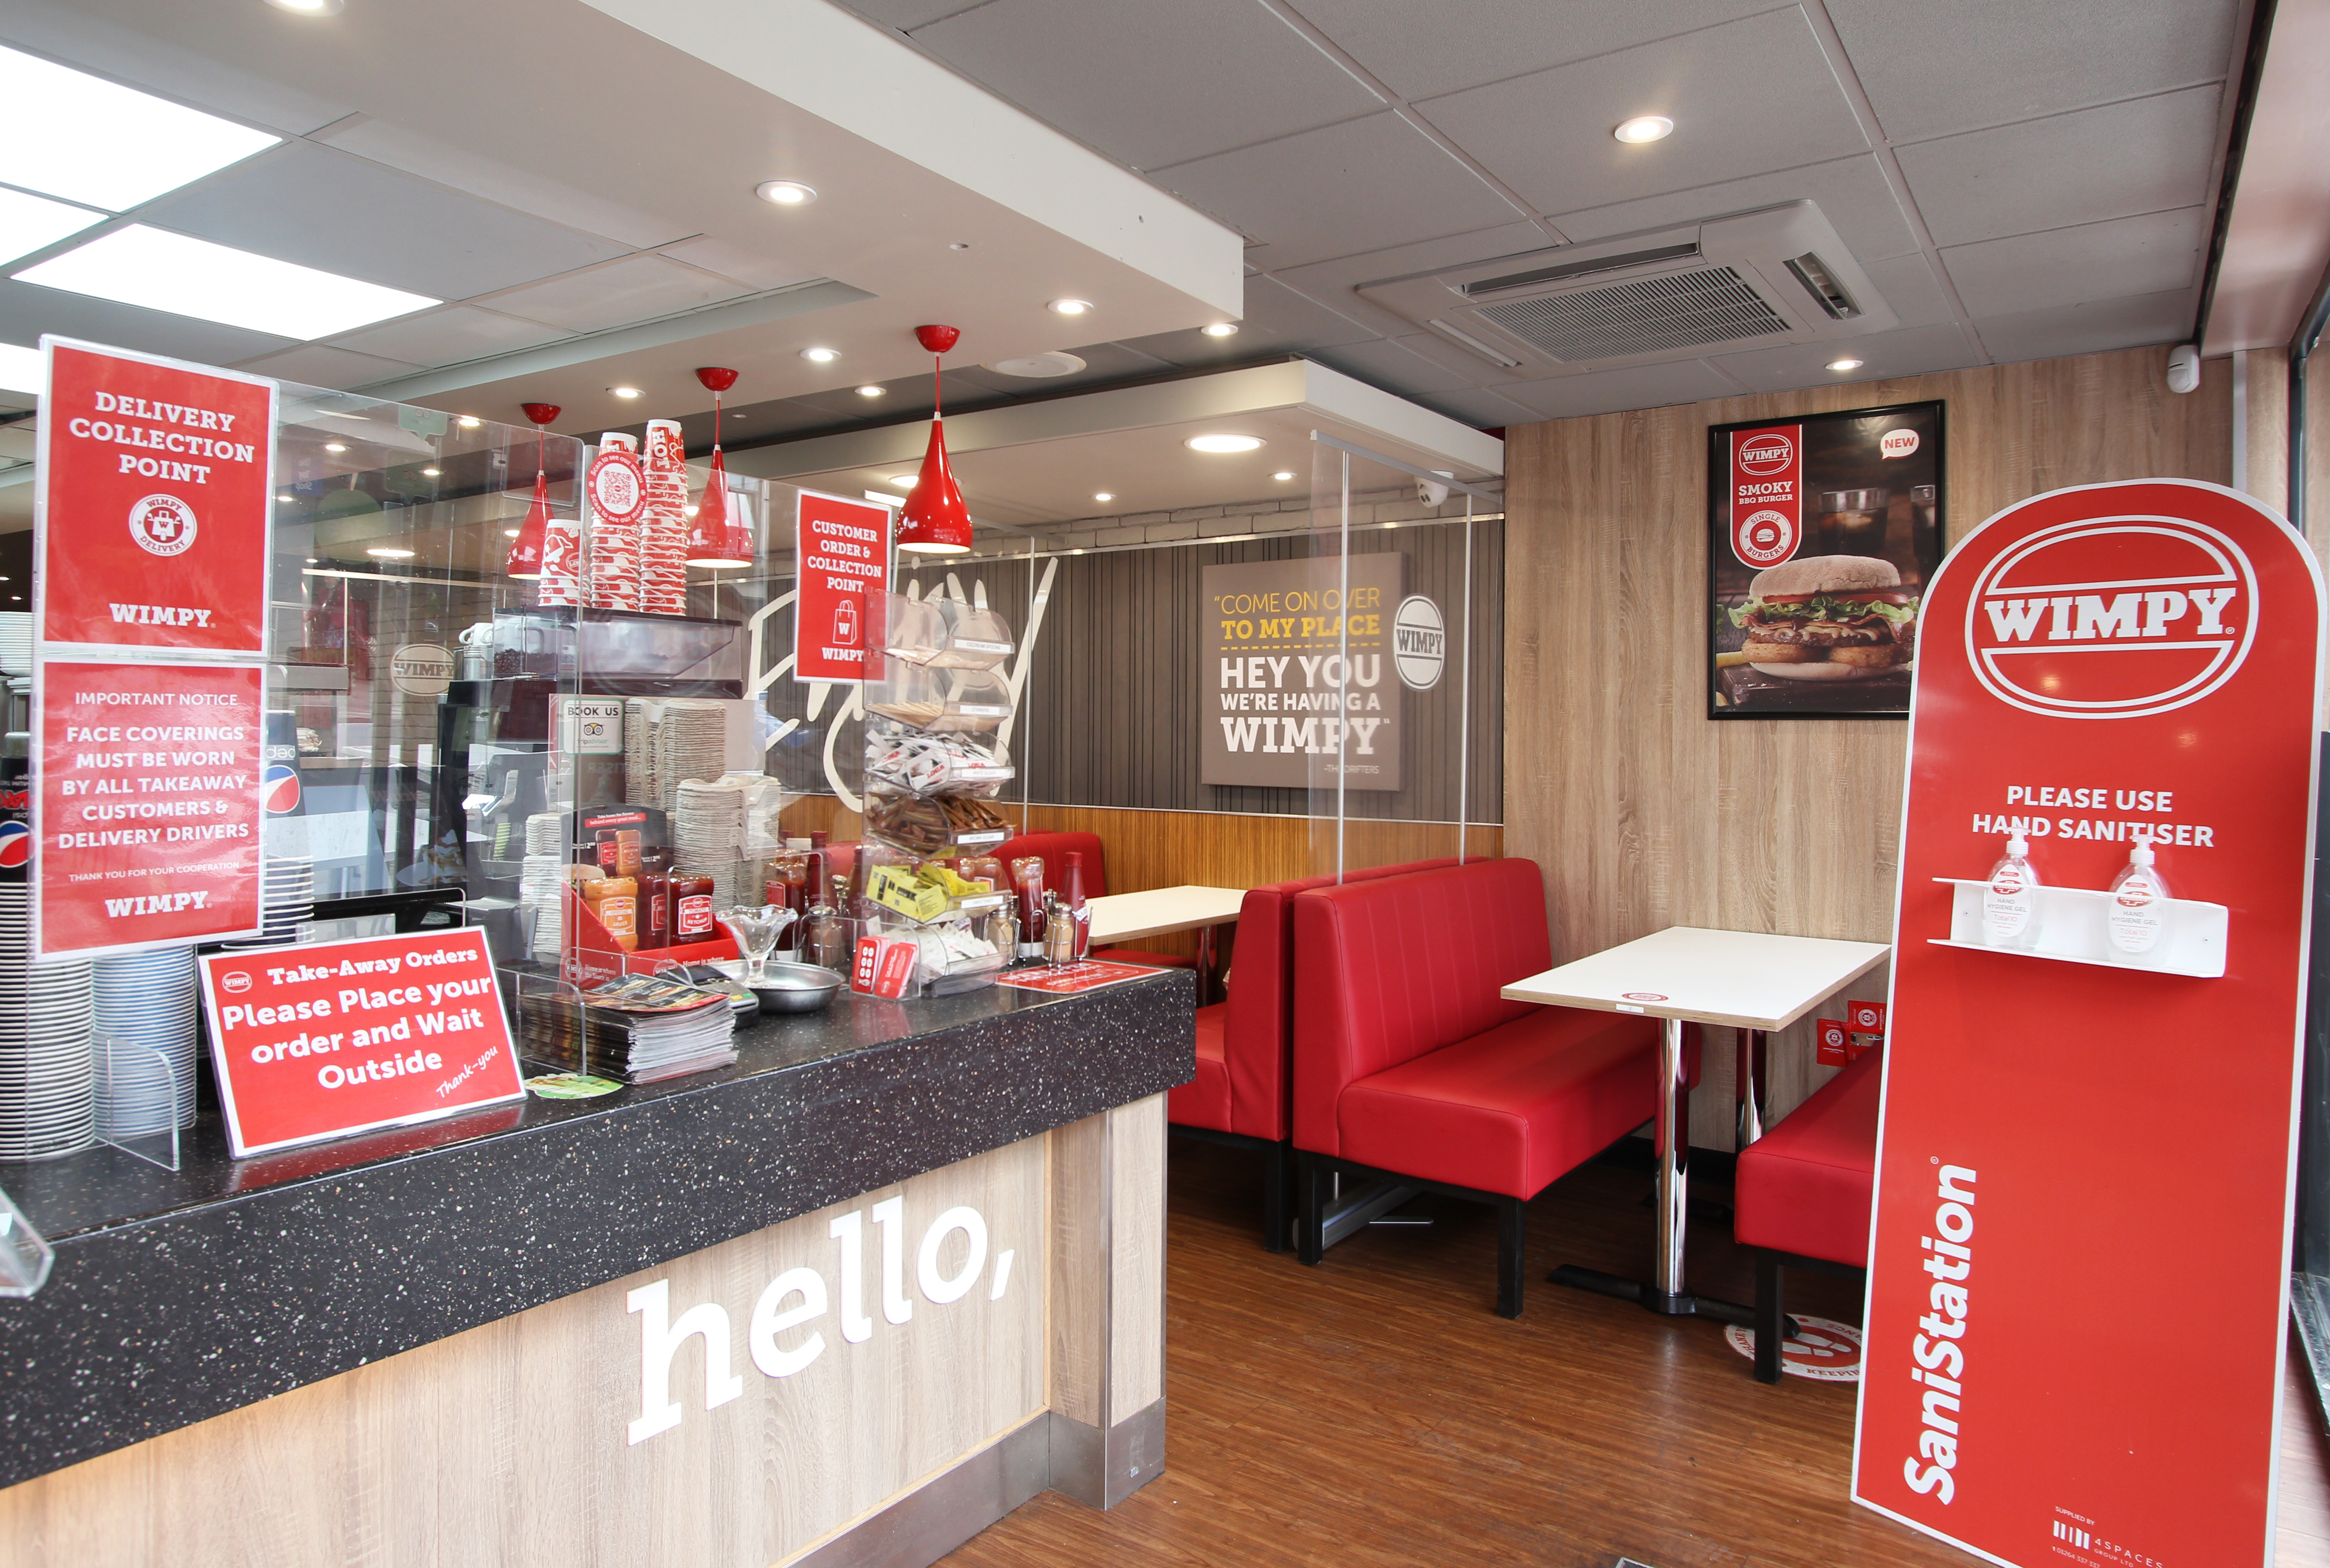 A warm welcome awaits at the new-look Wimpy Colchester